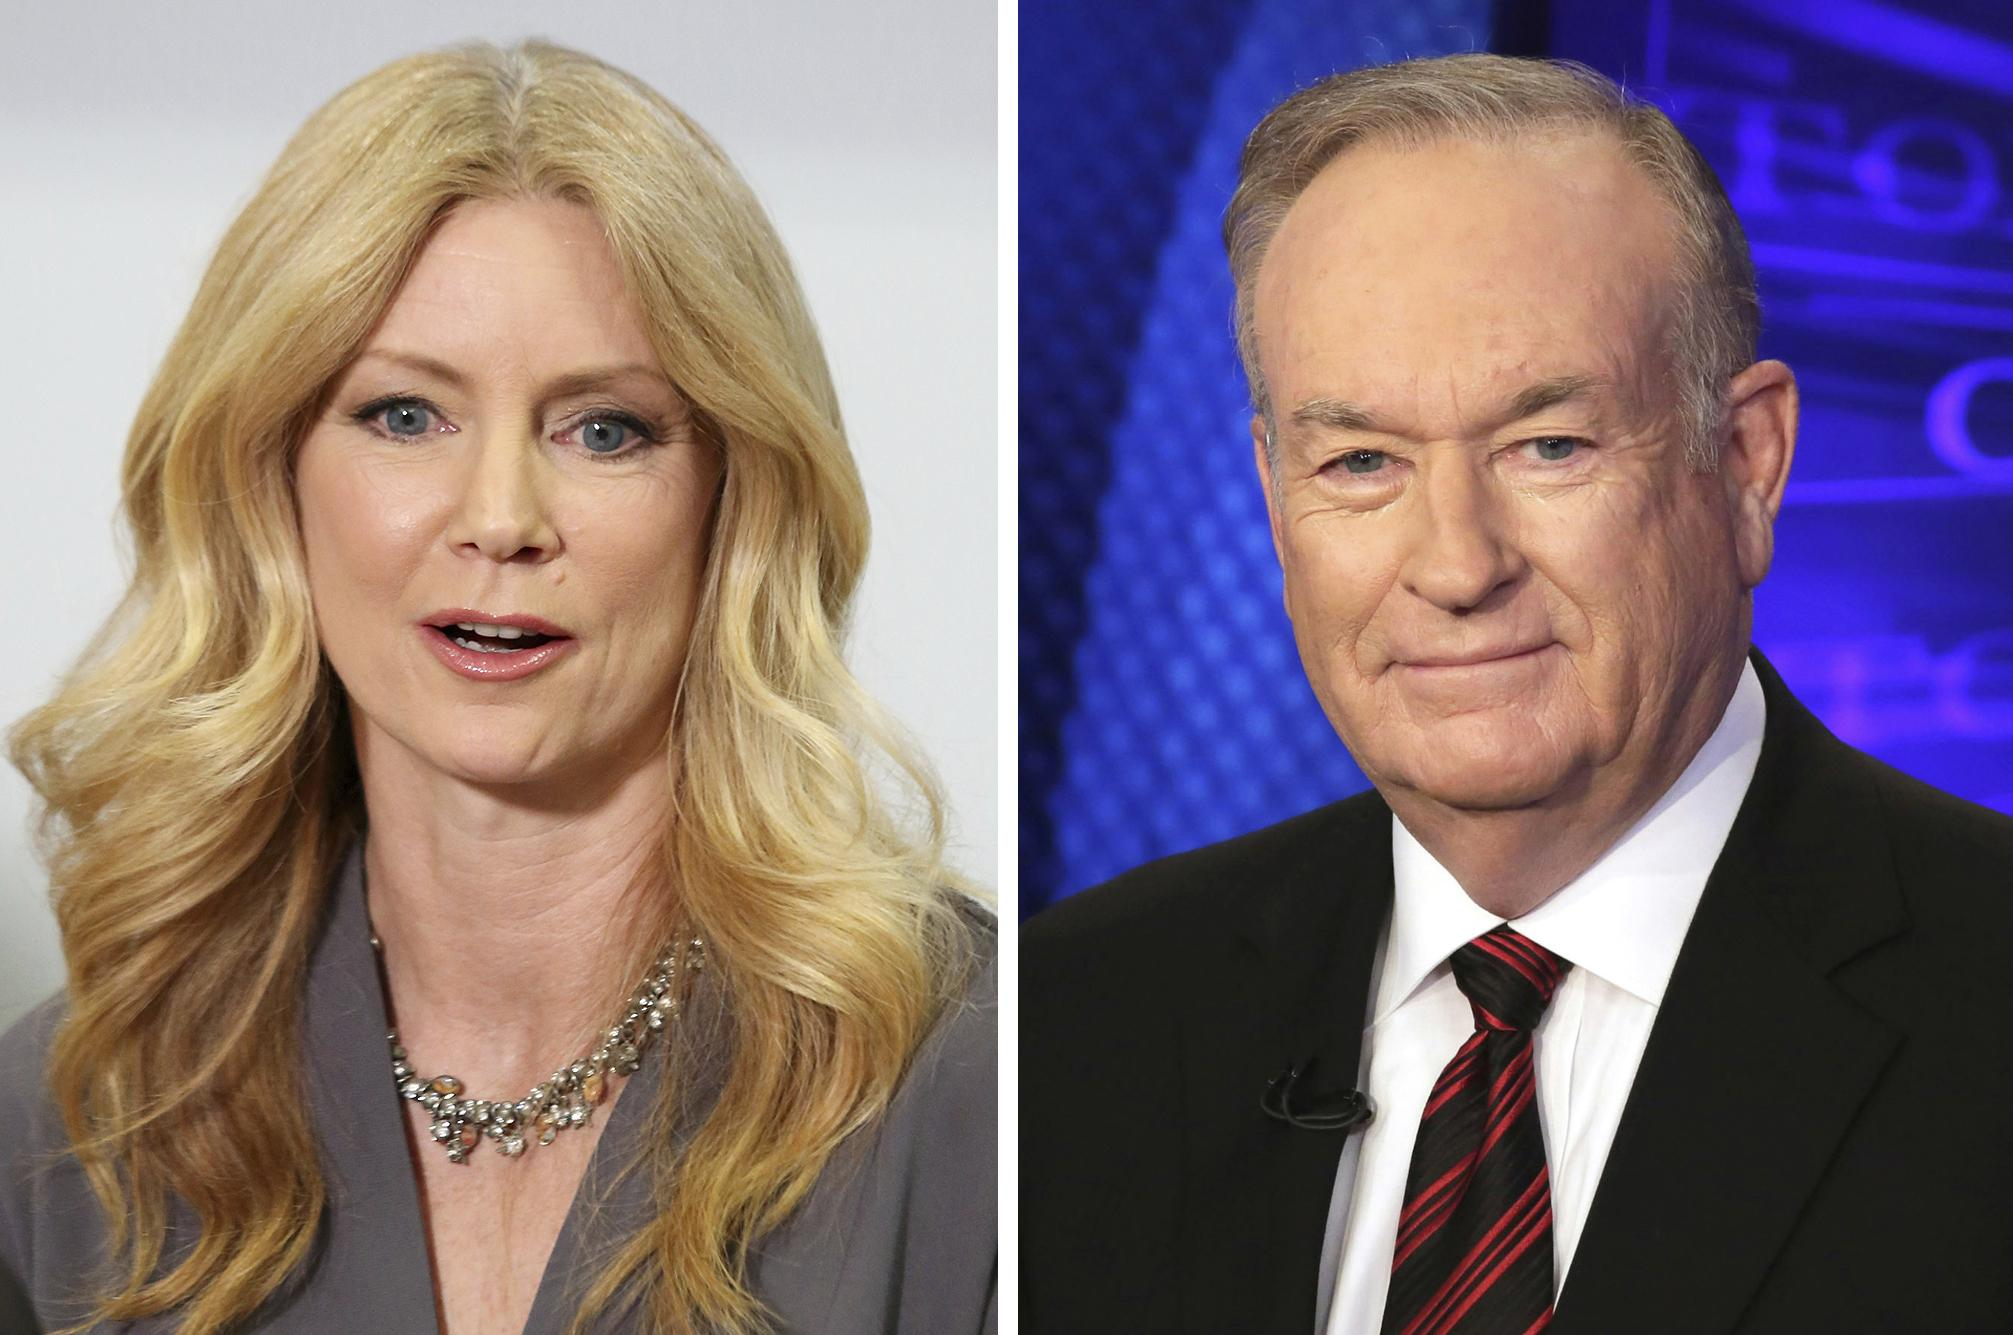 analysis bill o reilly s problems just got real the spokesman analysis bill o reilly s problems just got real the review